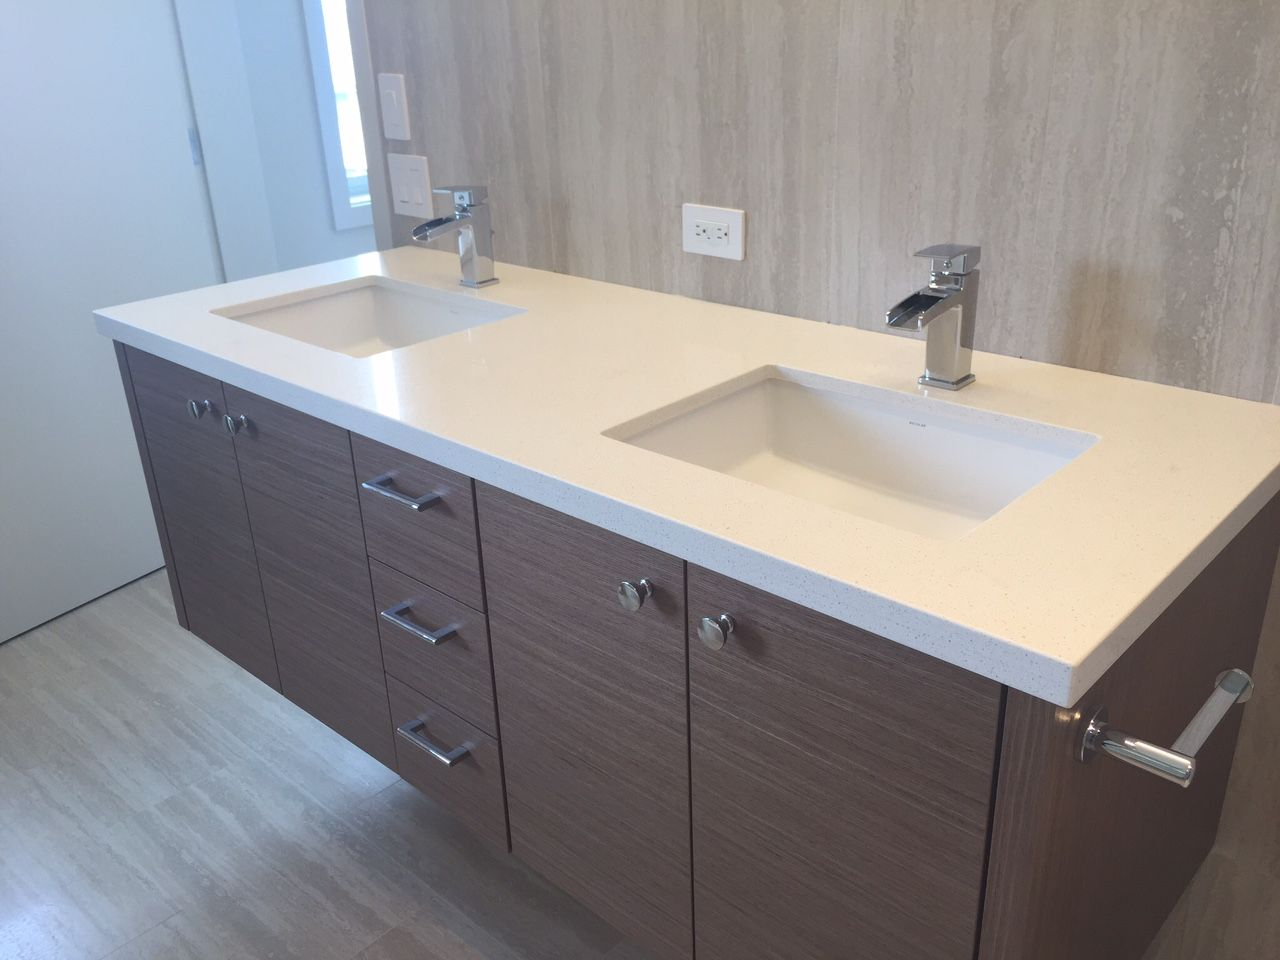 Caesarstone Bath Top with Undermount Sinks Countertops By Hawaii